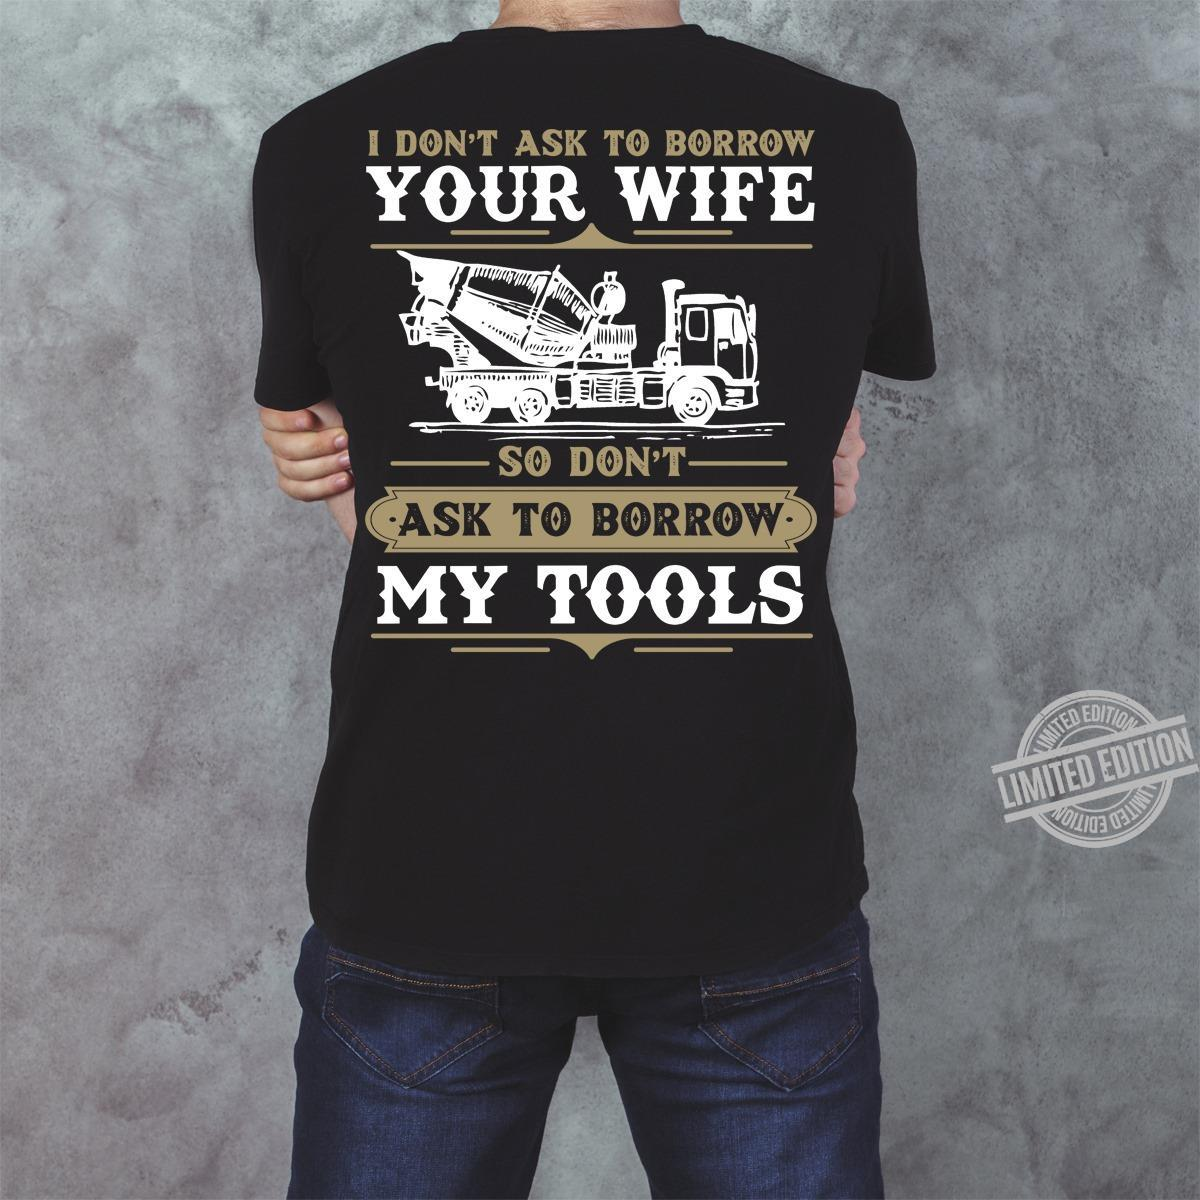 I Don't Ask To Borrow Your Wife So Don't Ask To Borrow My Tools Shirt